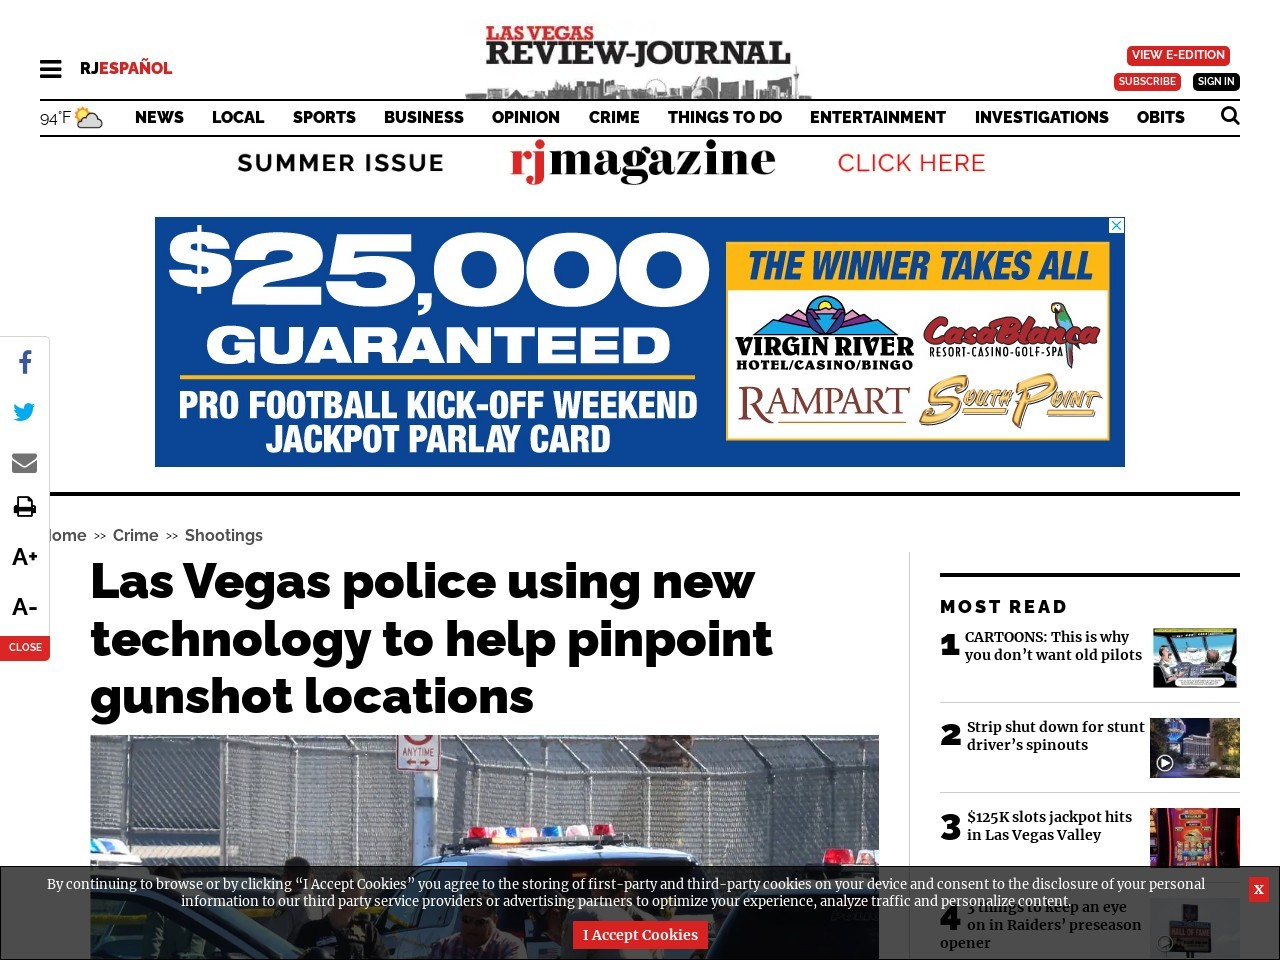 Las Vegas police using new technology to help pinpoint gunshot locations